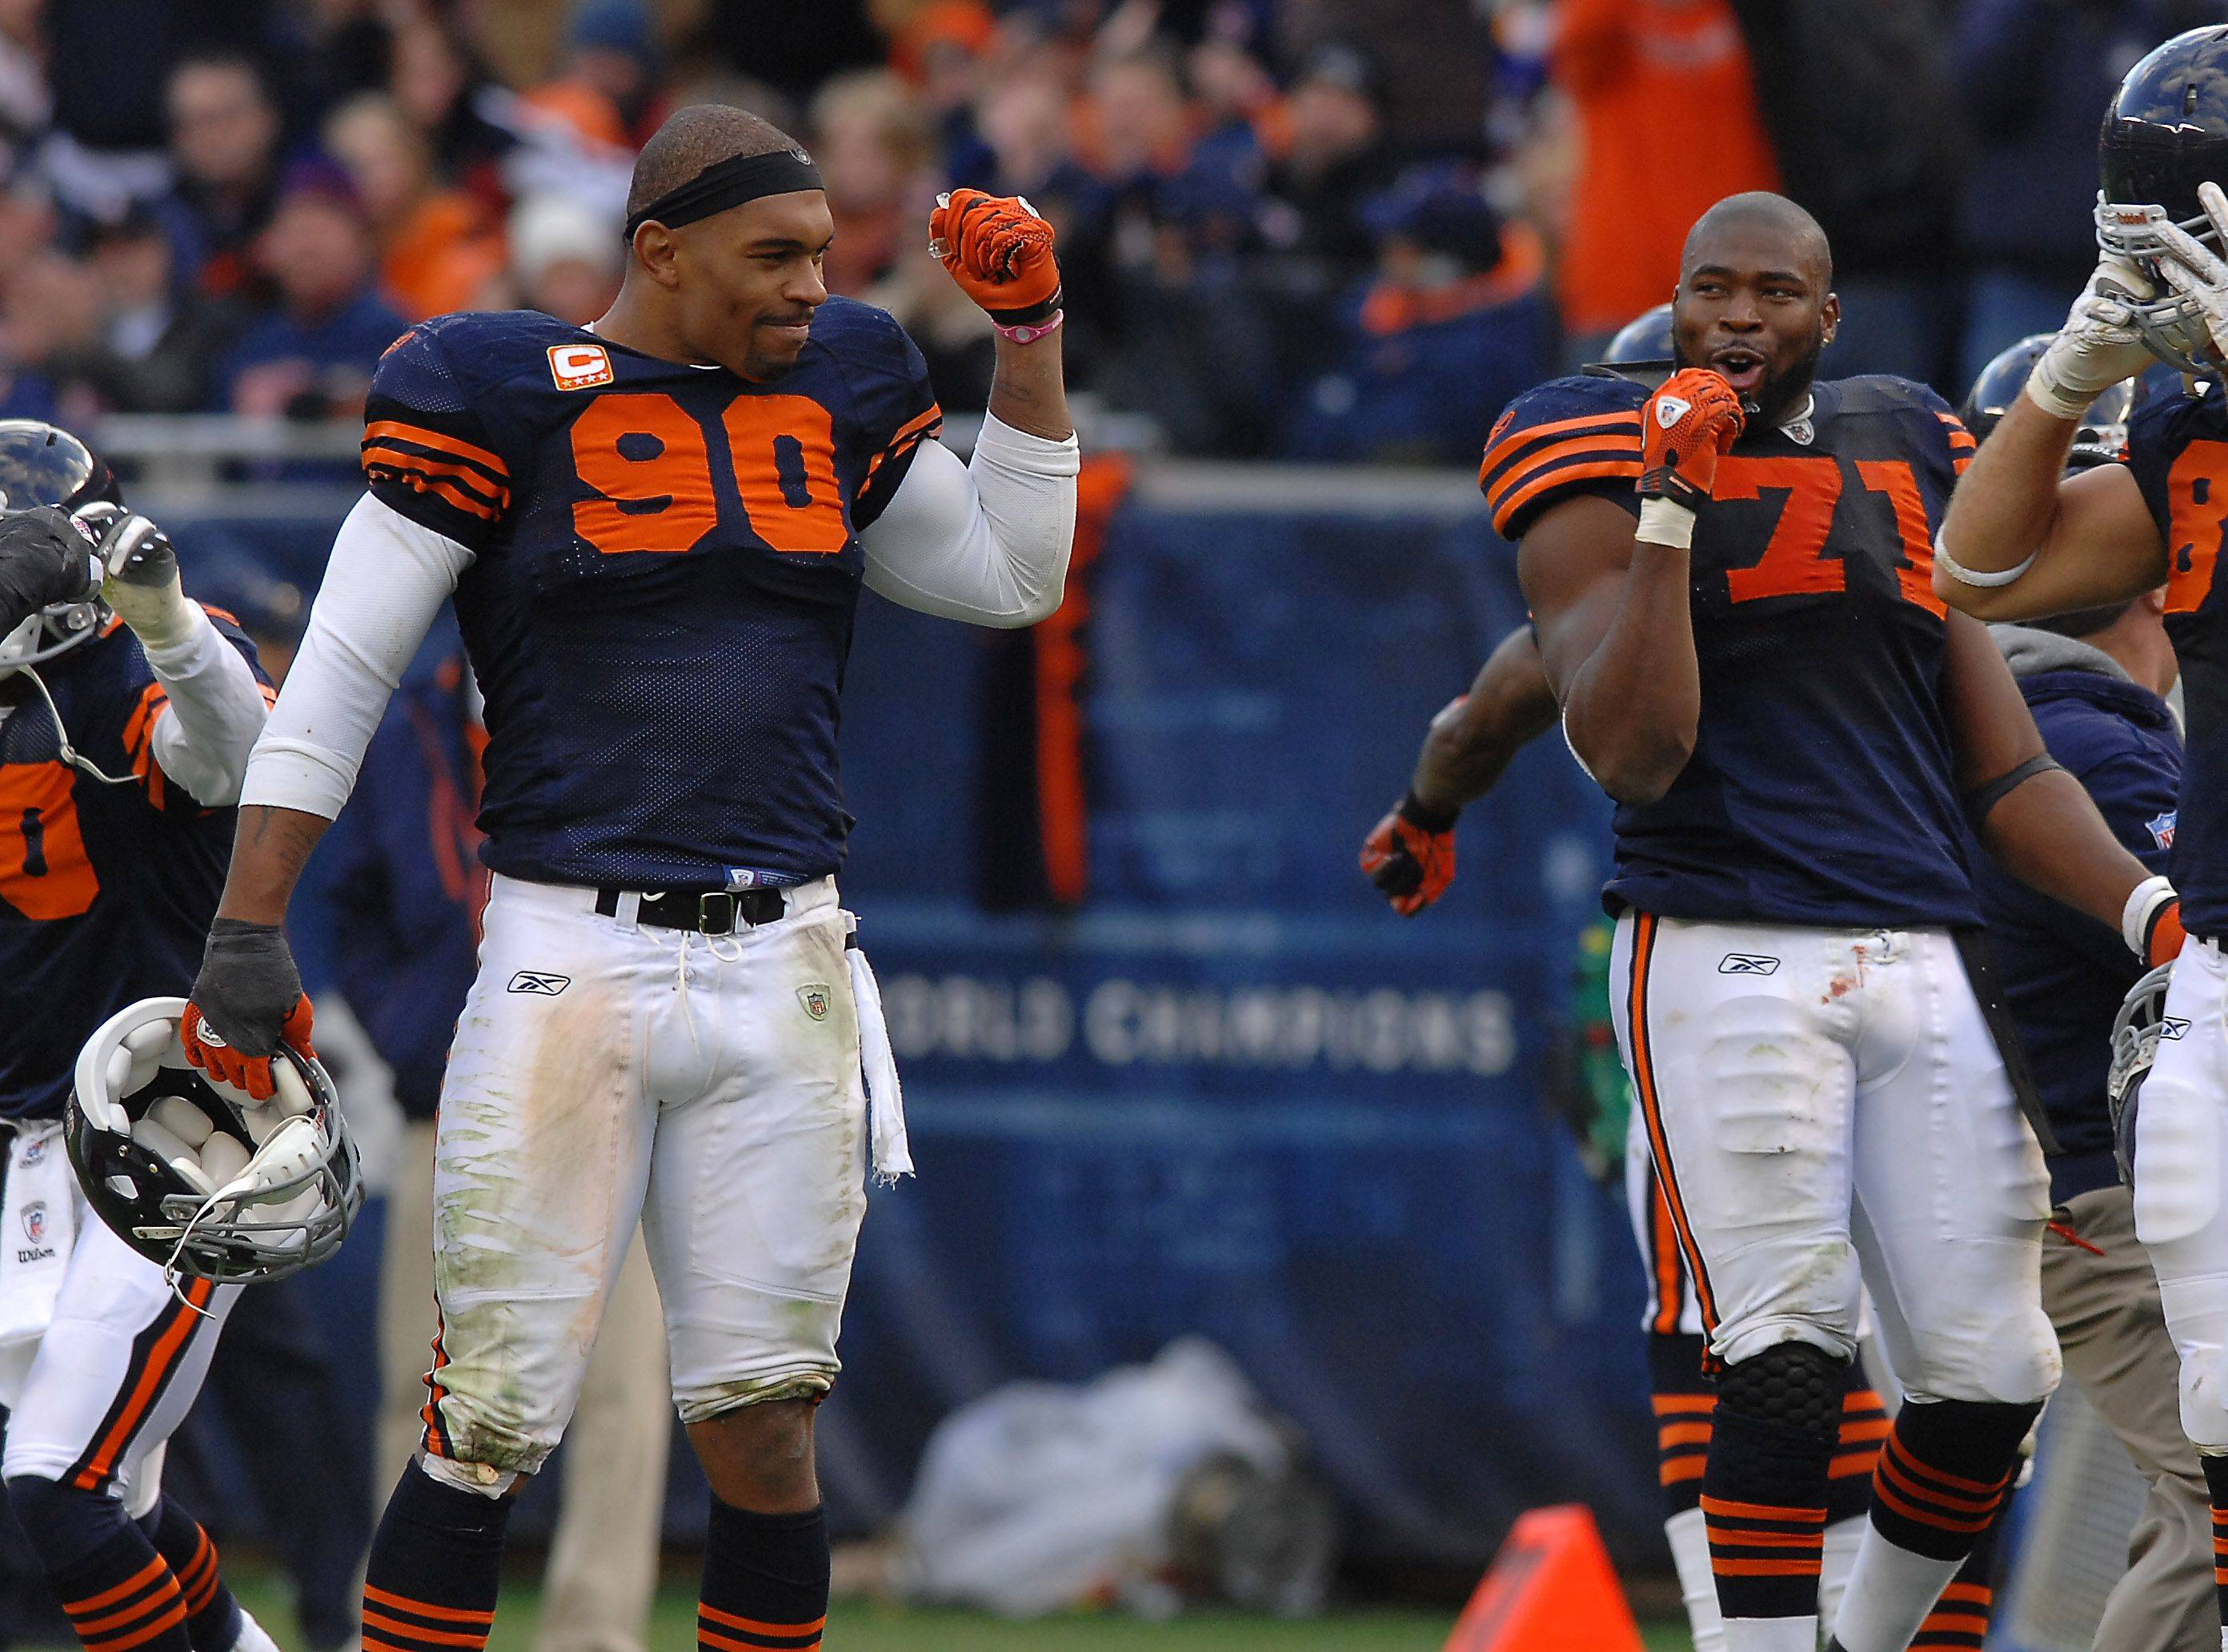 Chicago Bears Julius Peppers and Israel Idonije celebrate Lance Briggs interception in the 4th quarter.